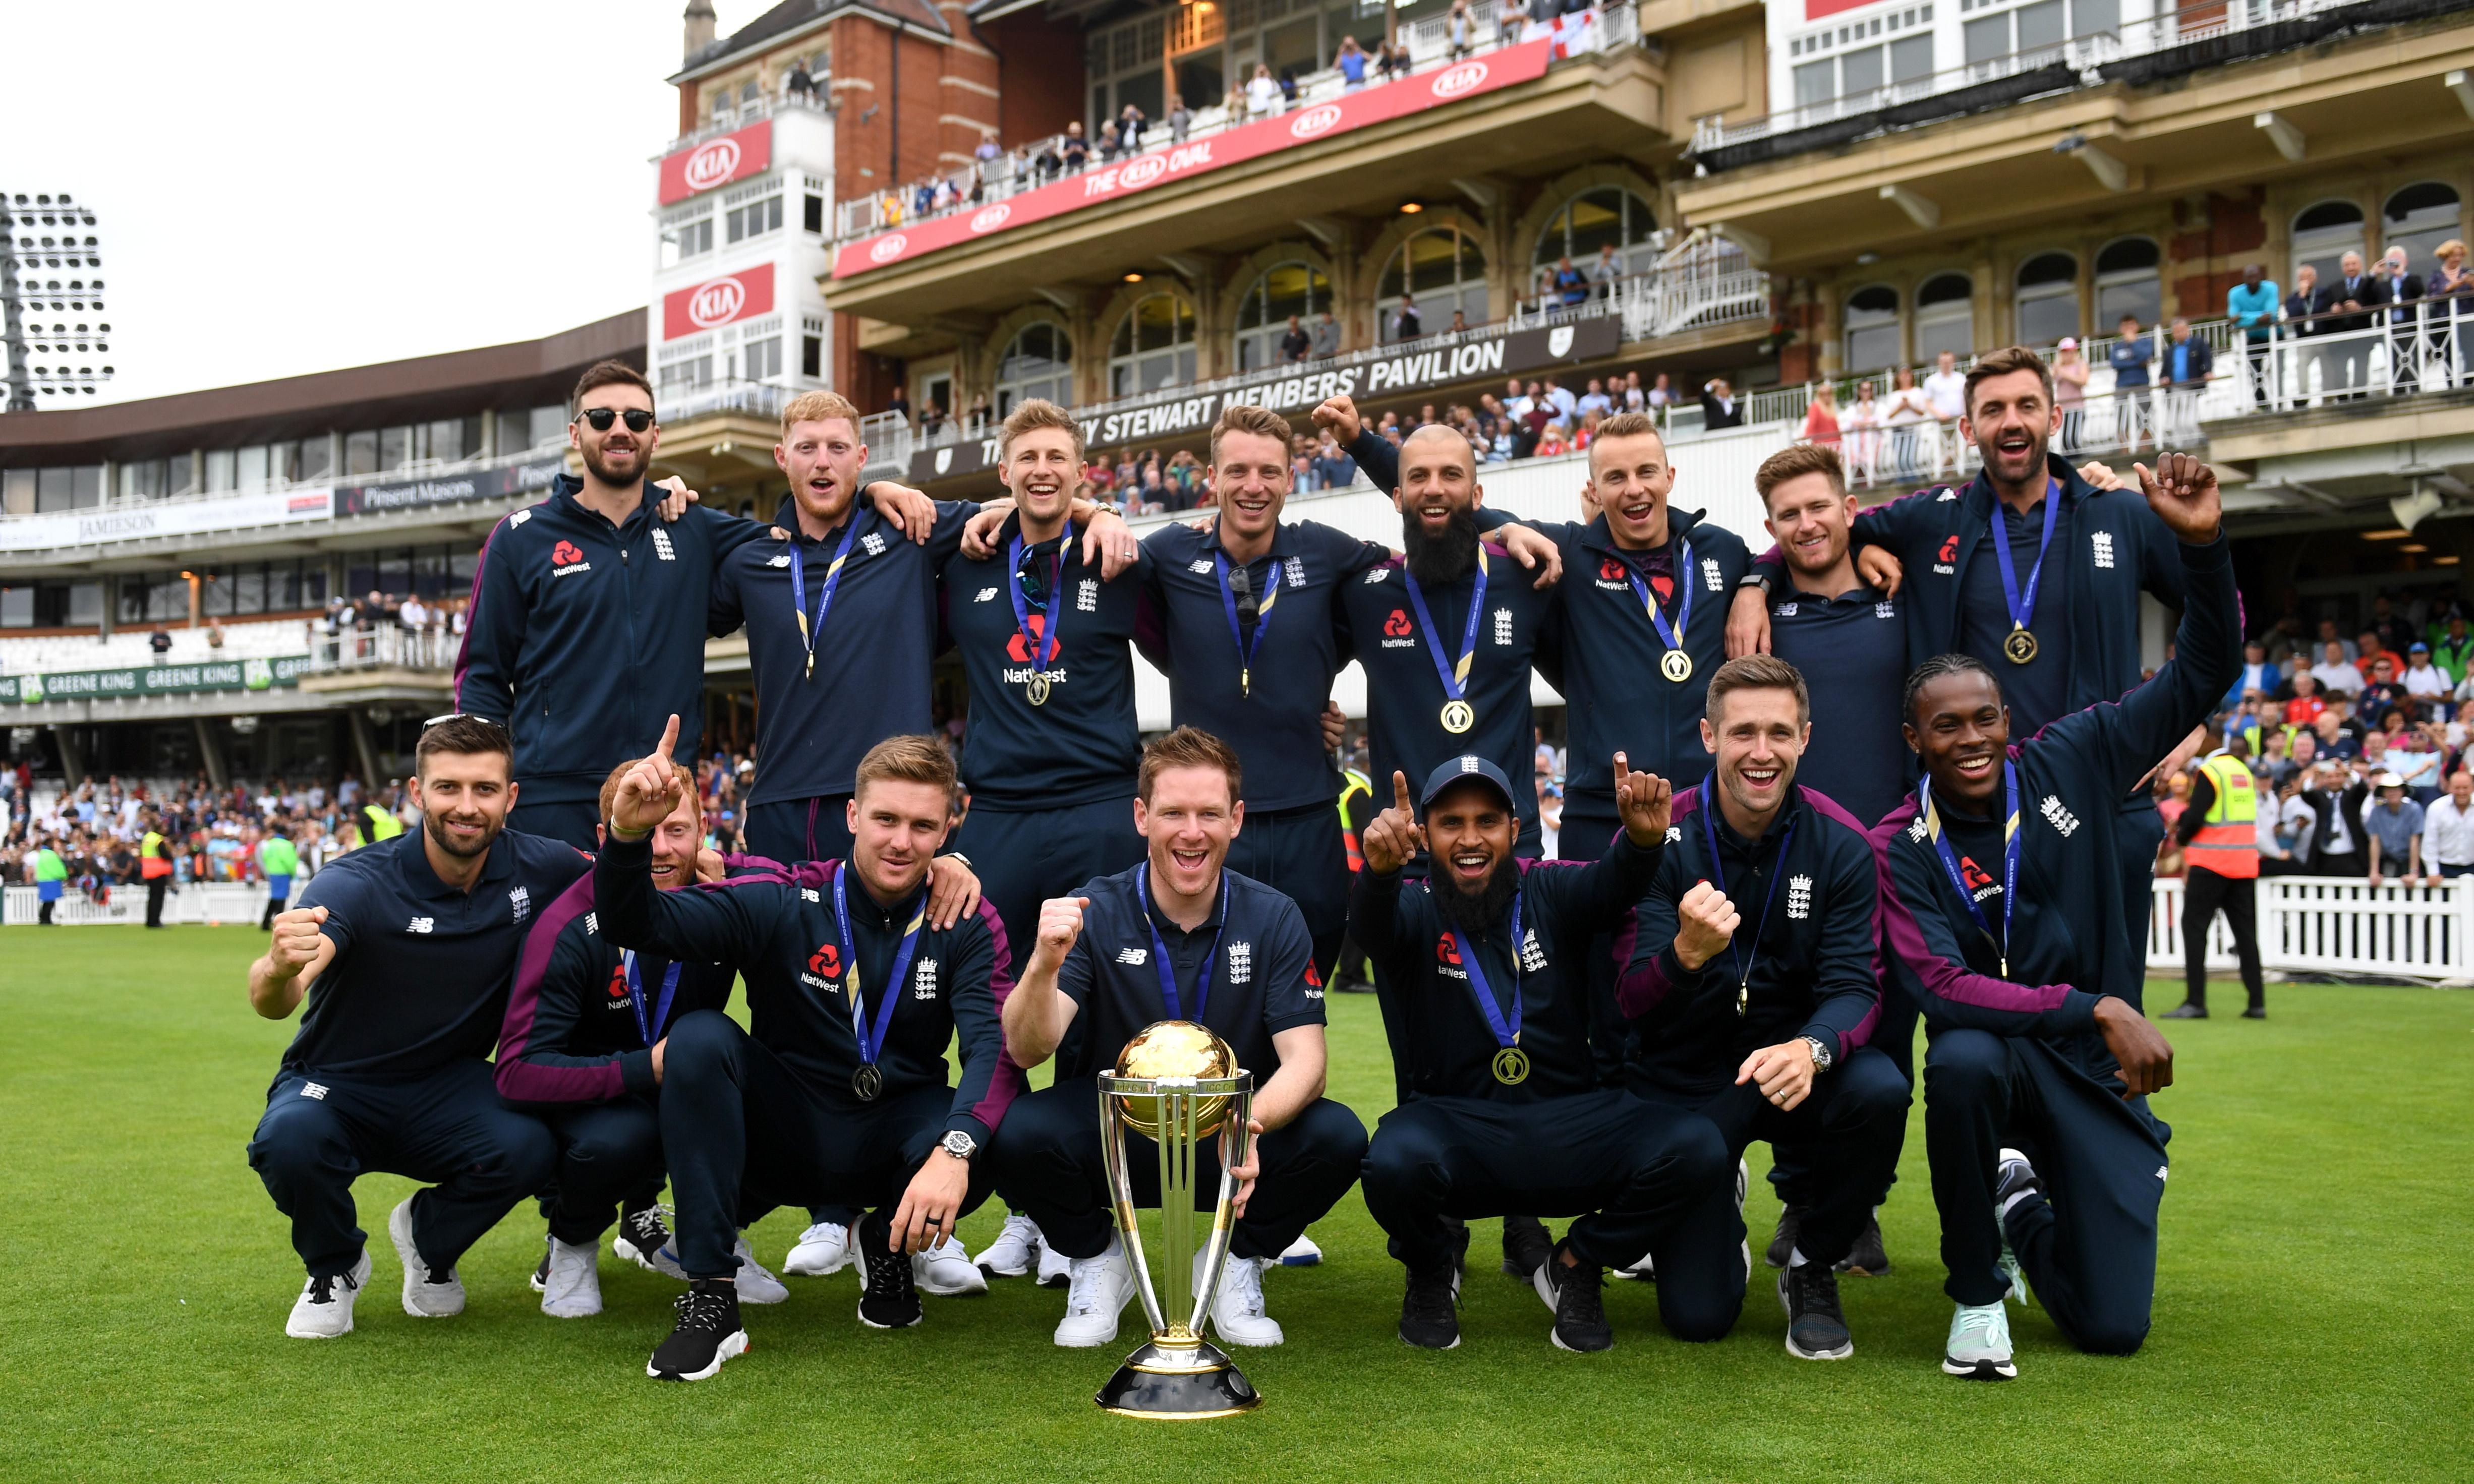 Jacob Rees-Mogg stumped by England's World Cup triumph